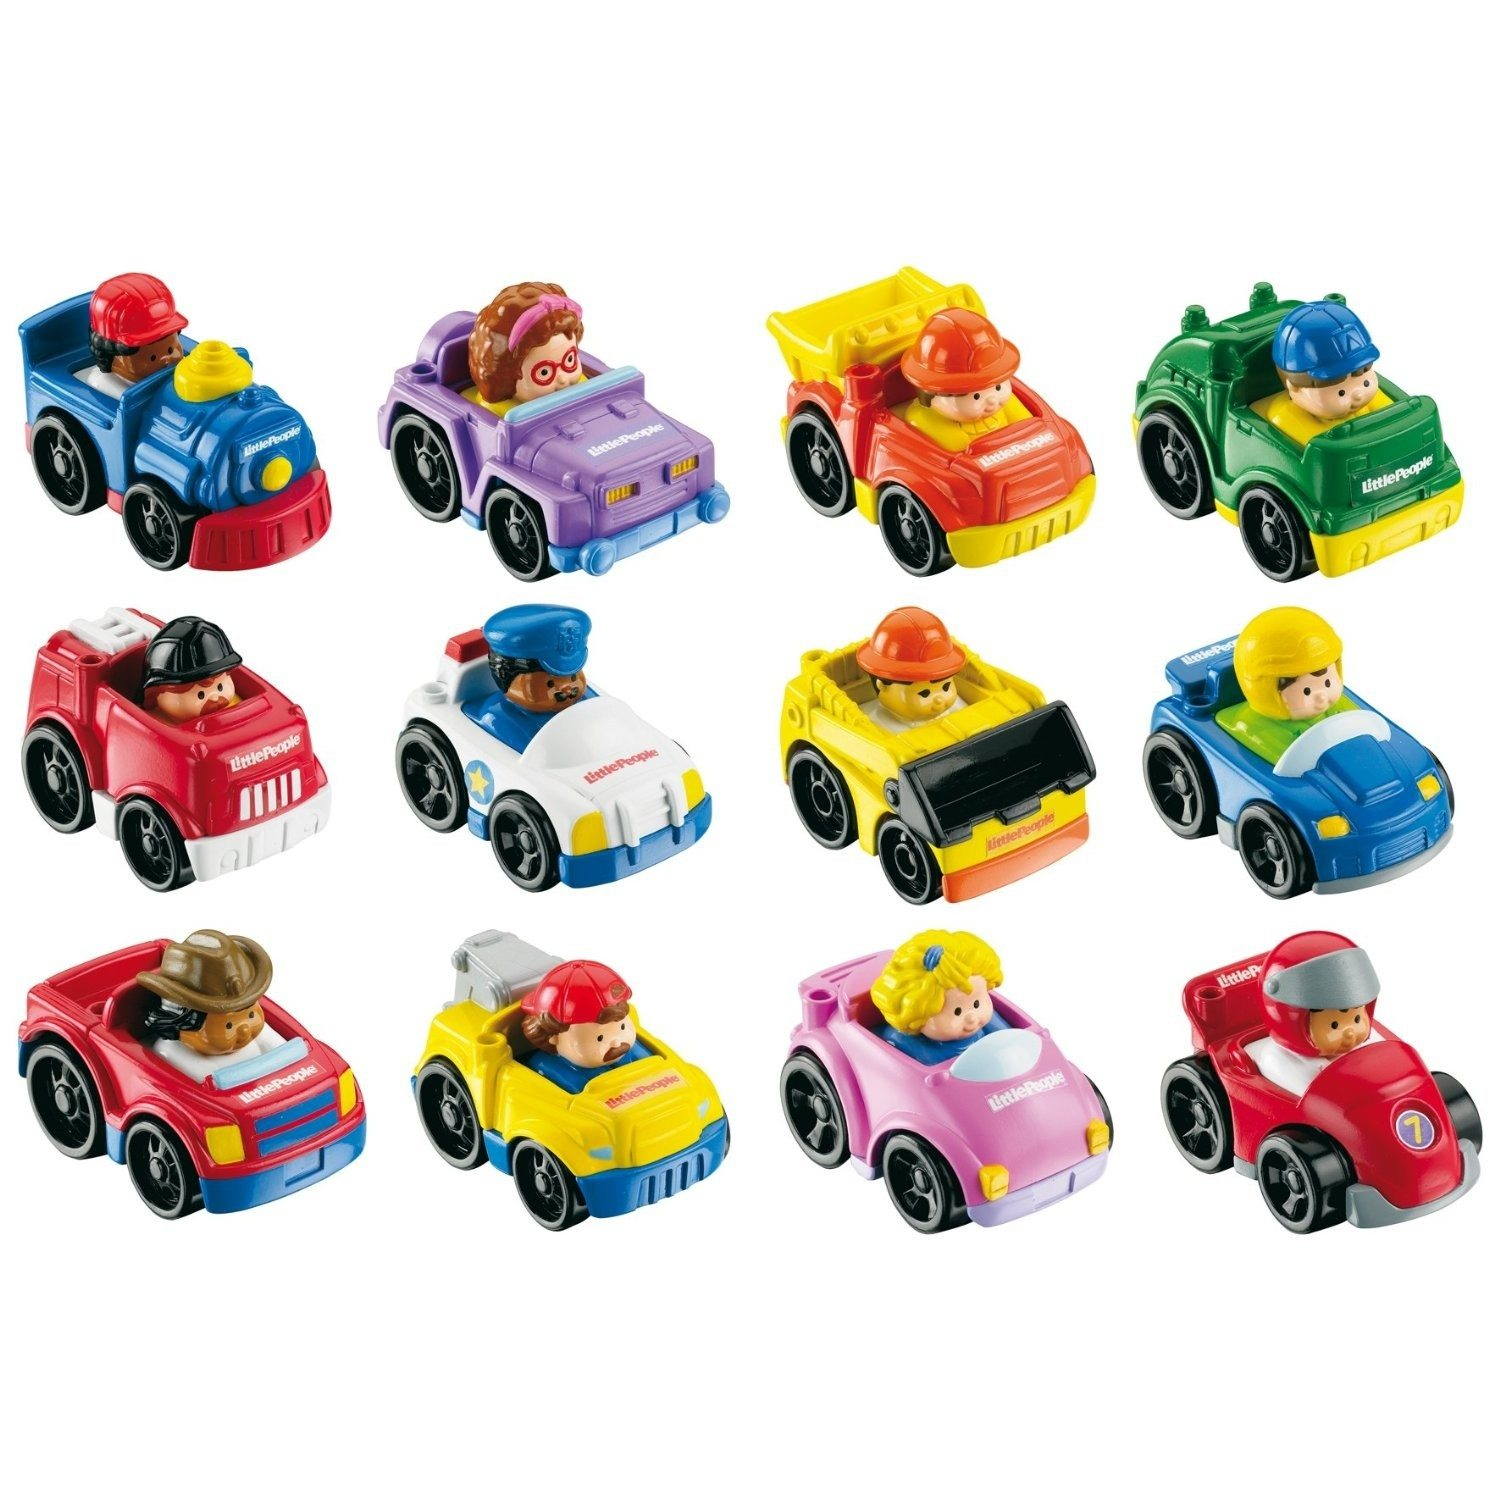 Little People – speelgoedauto's van Fisher Price